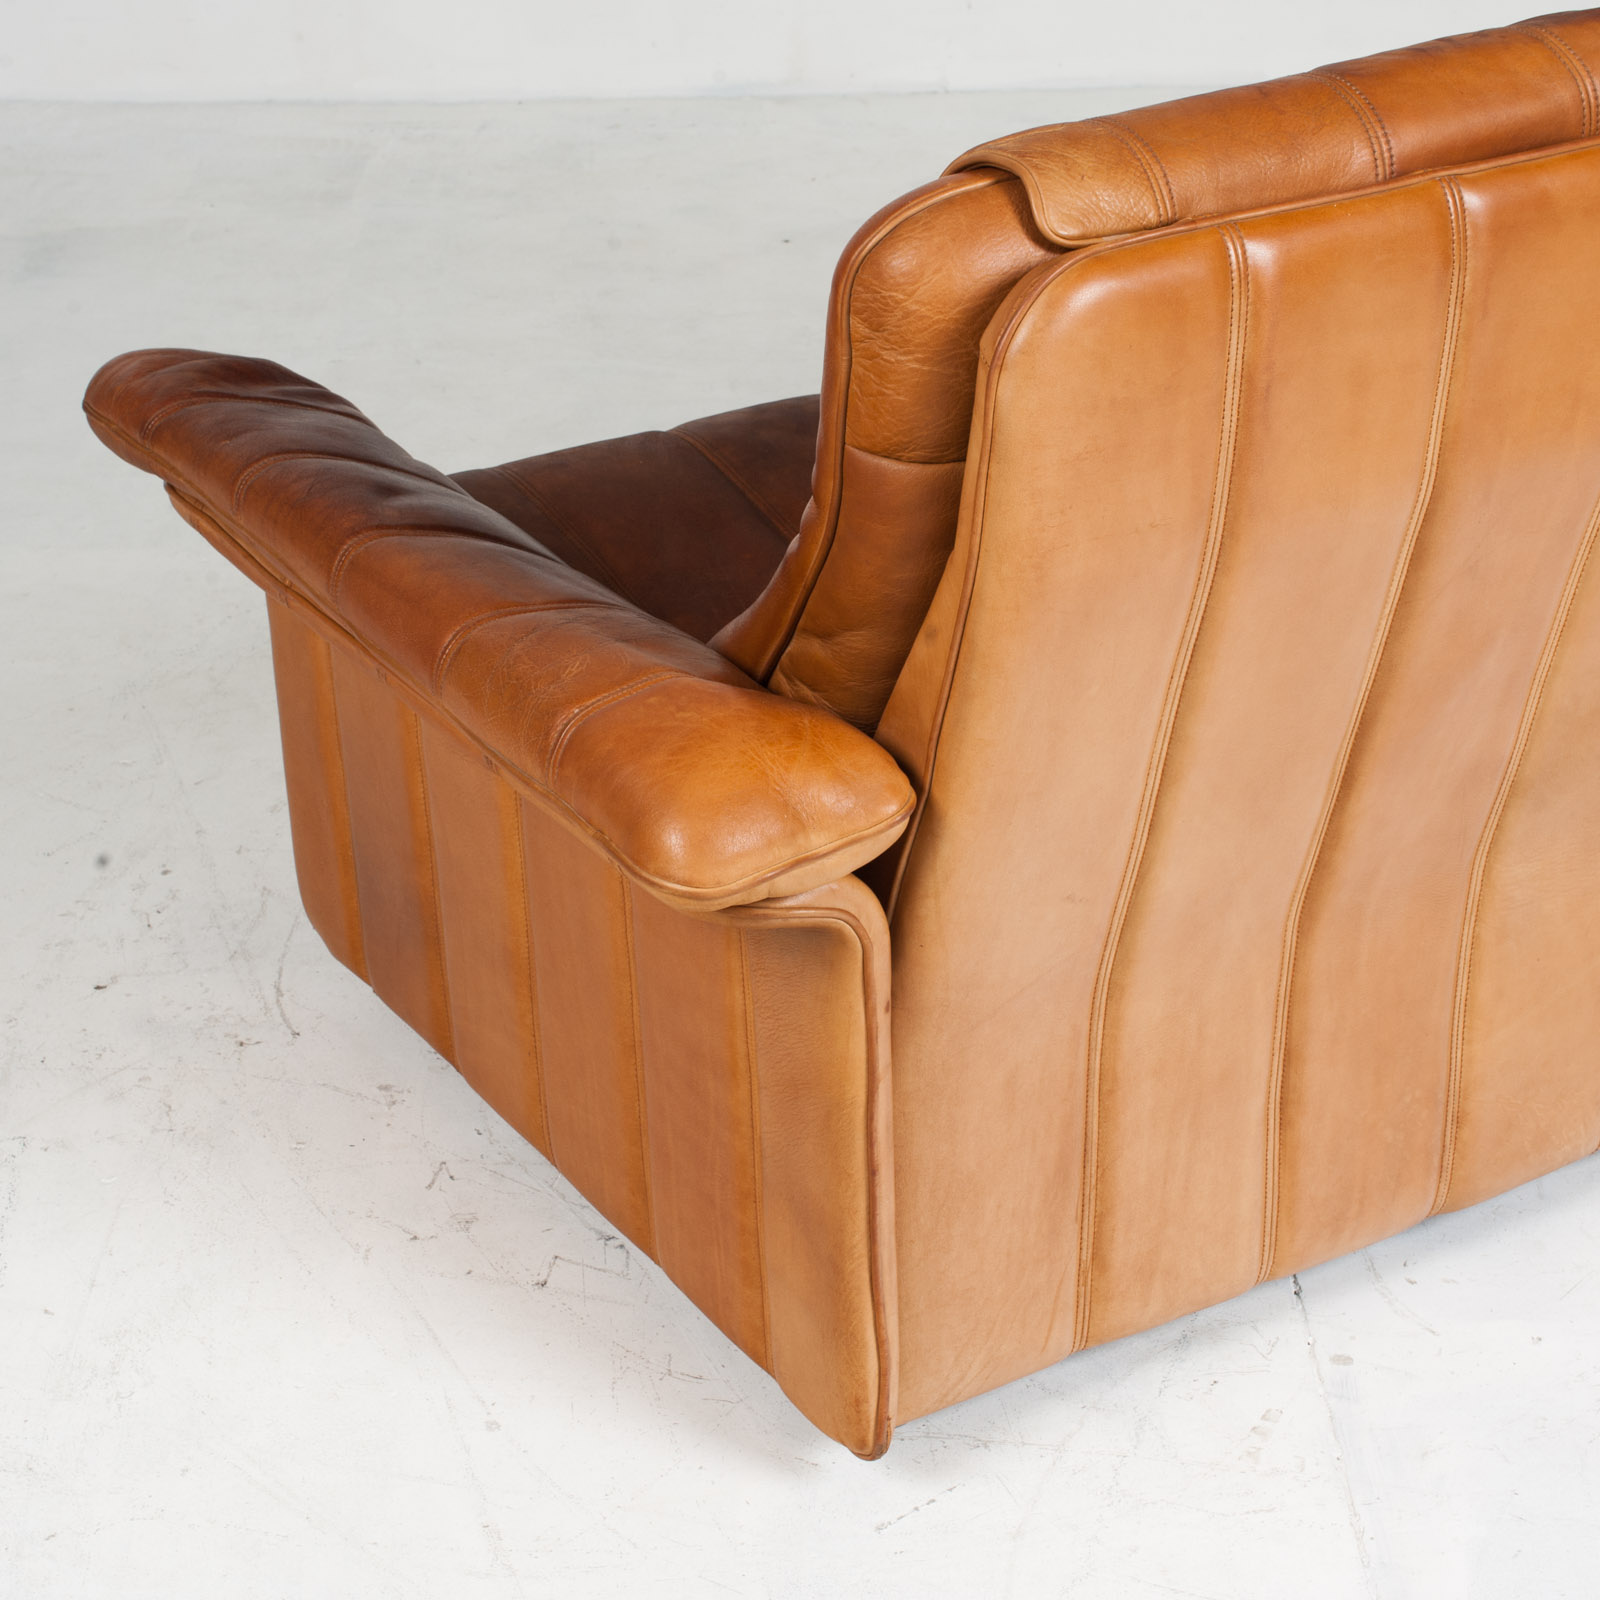 2 Seat Sofa By De Sede In Tan Leather 1970s Switzerland 13